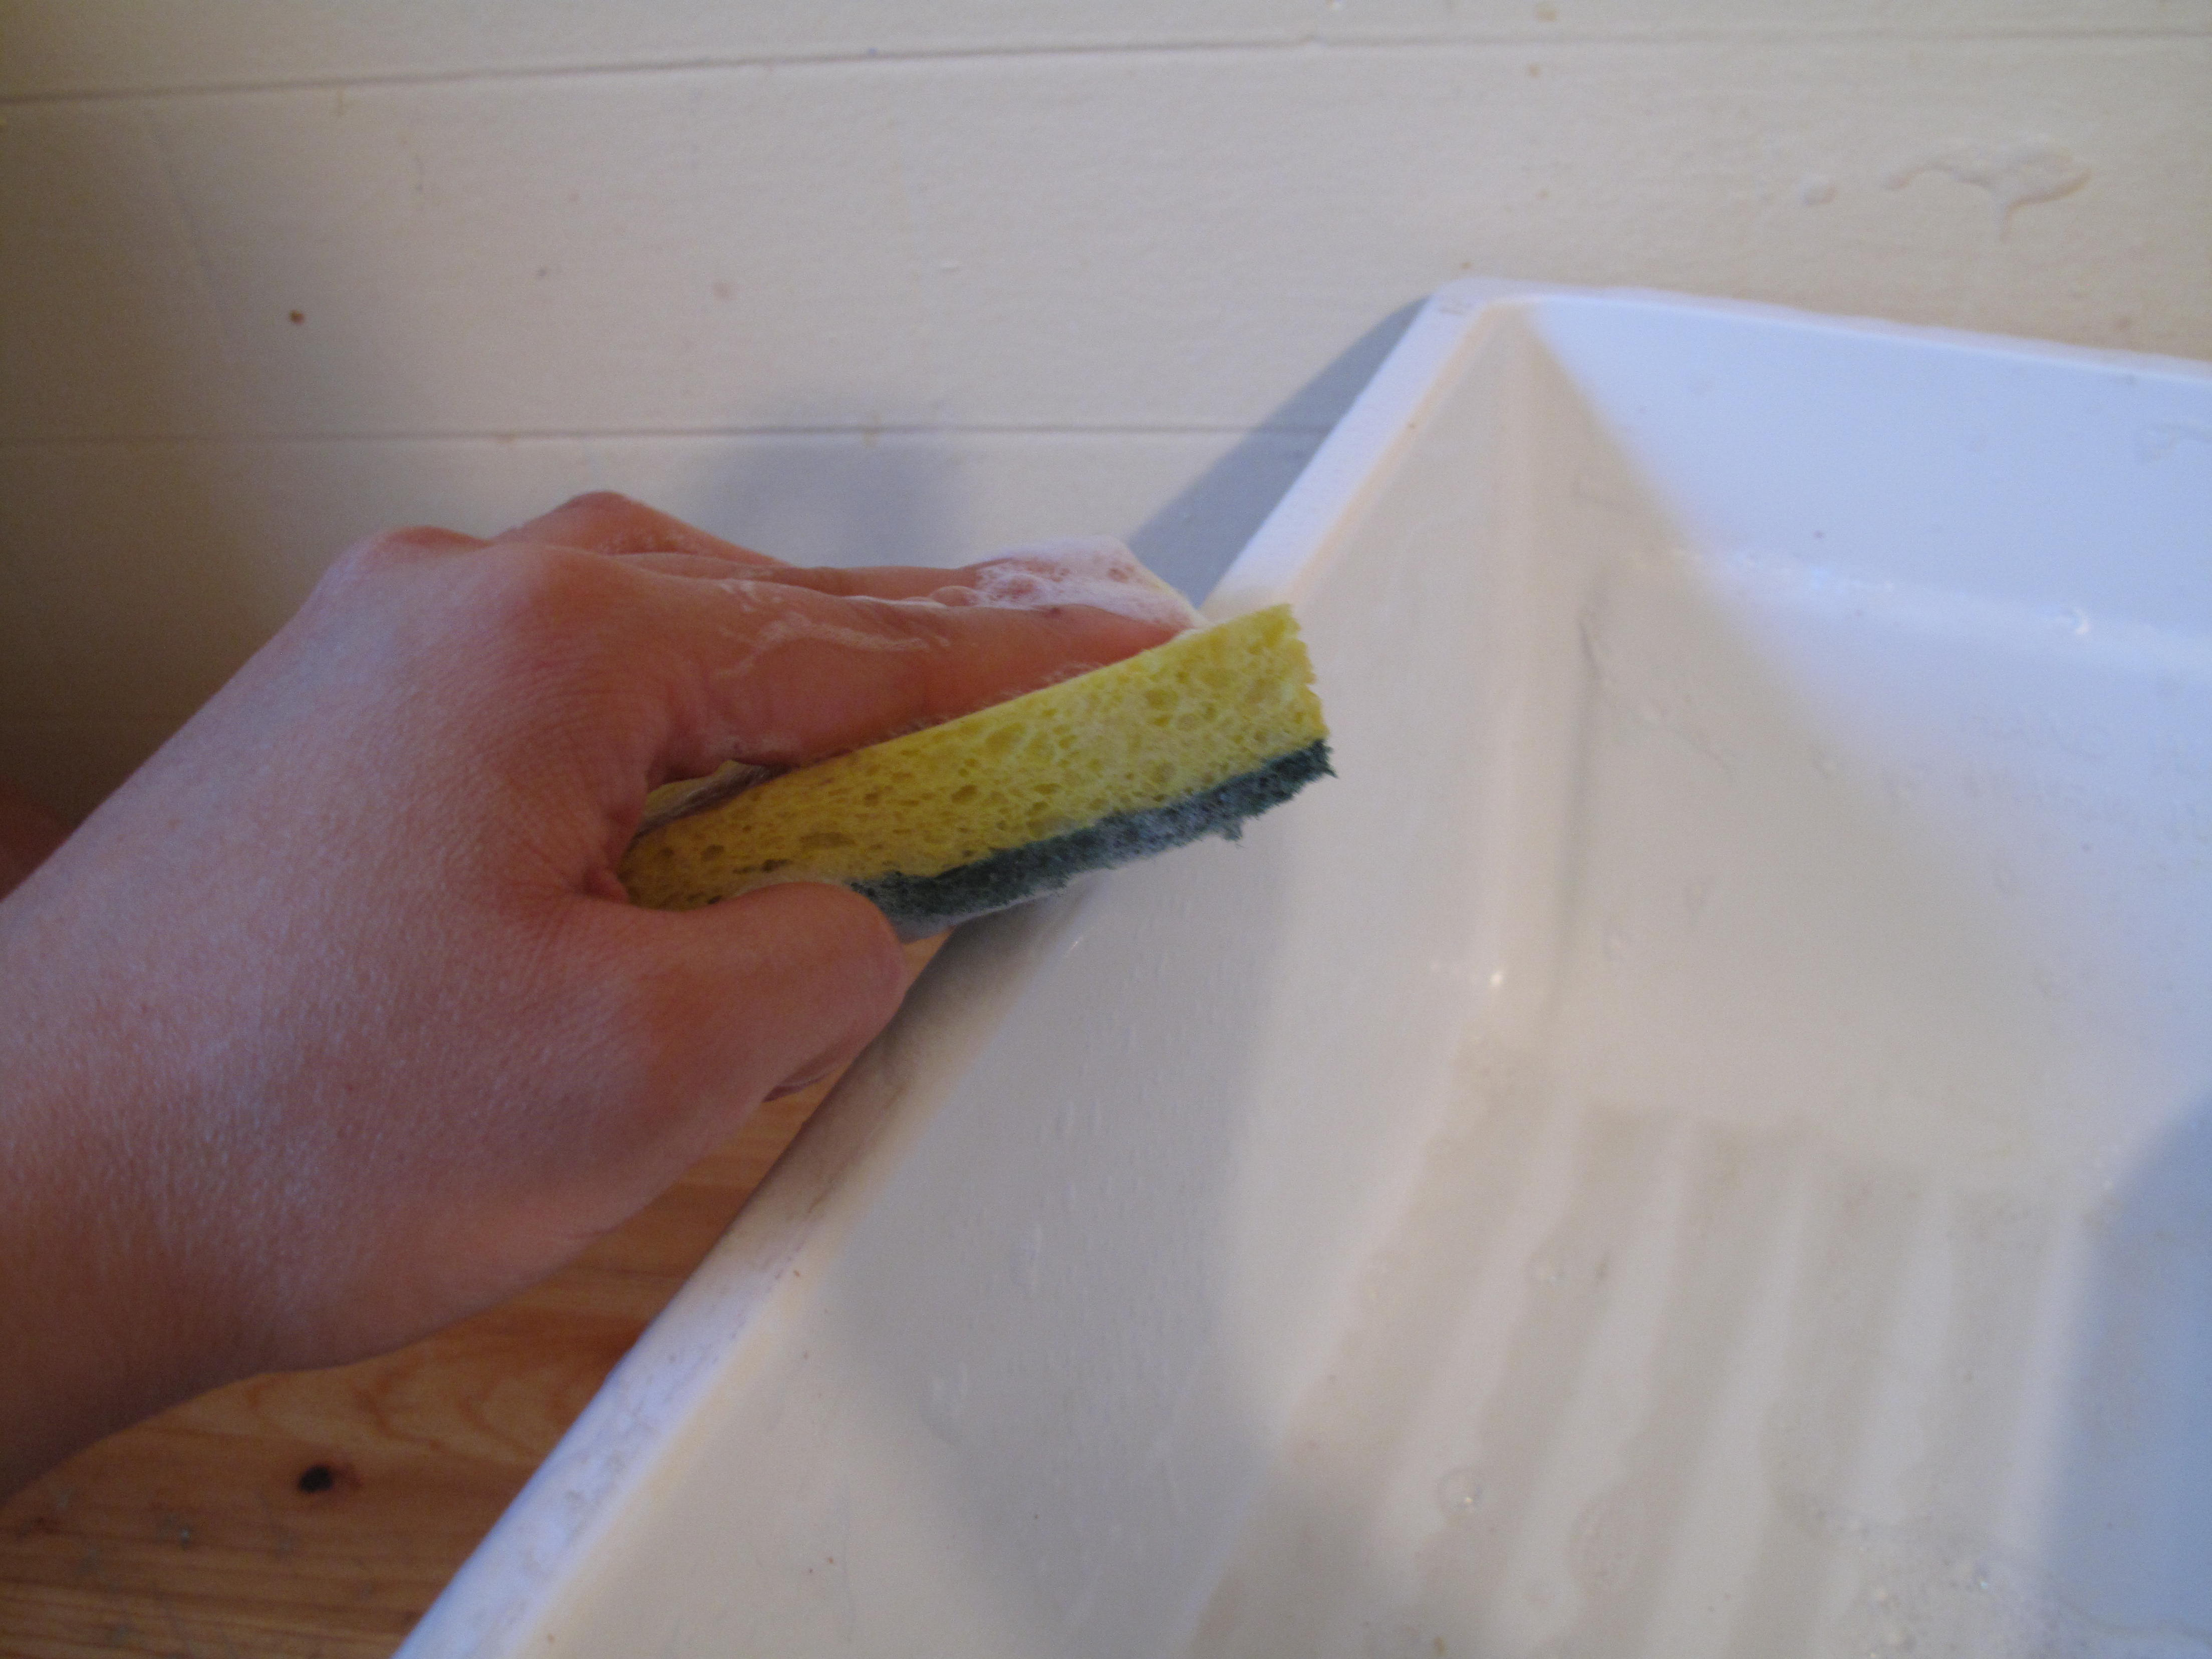 Remove crisper drawers completely from the refrigerator and scrub them clean with dishwashing detergent and hot water.